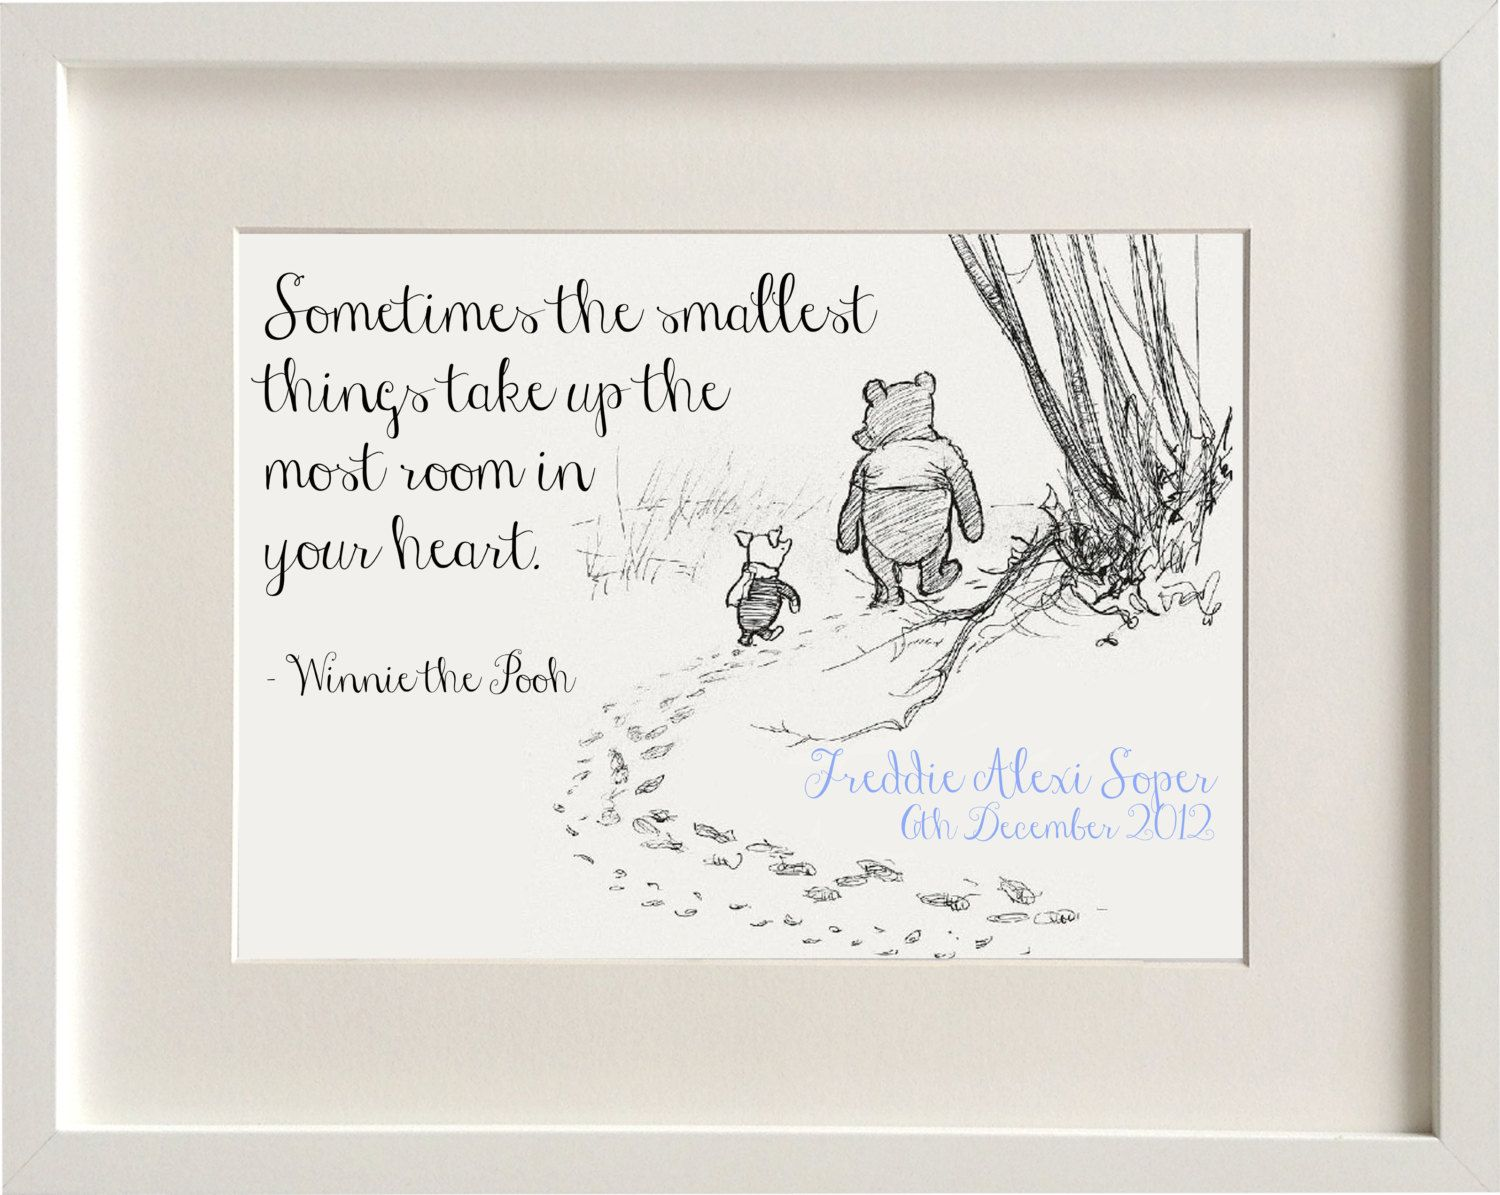 Personalised new baby boygirl winnie the pooh quote nursery birth personalised new baby boygirl winnie the pooh nursery birth name print keepsake picture christening gift by lexislittleprints on etsy negle Gallery